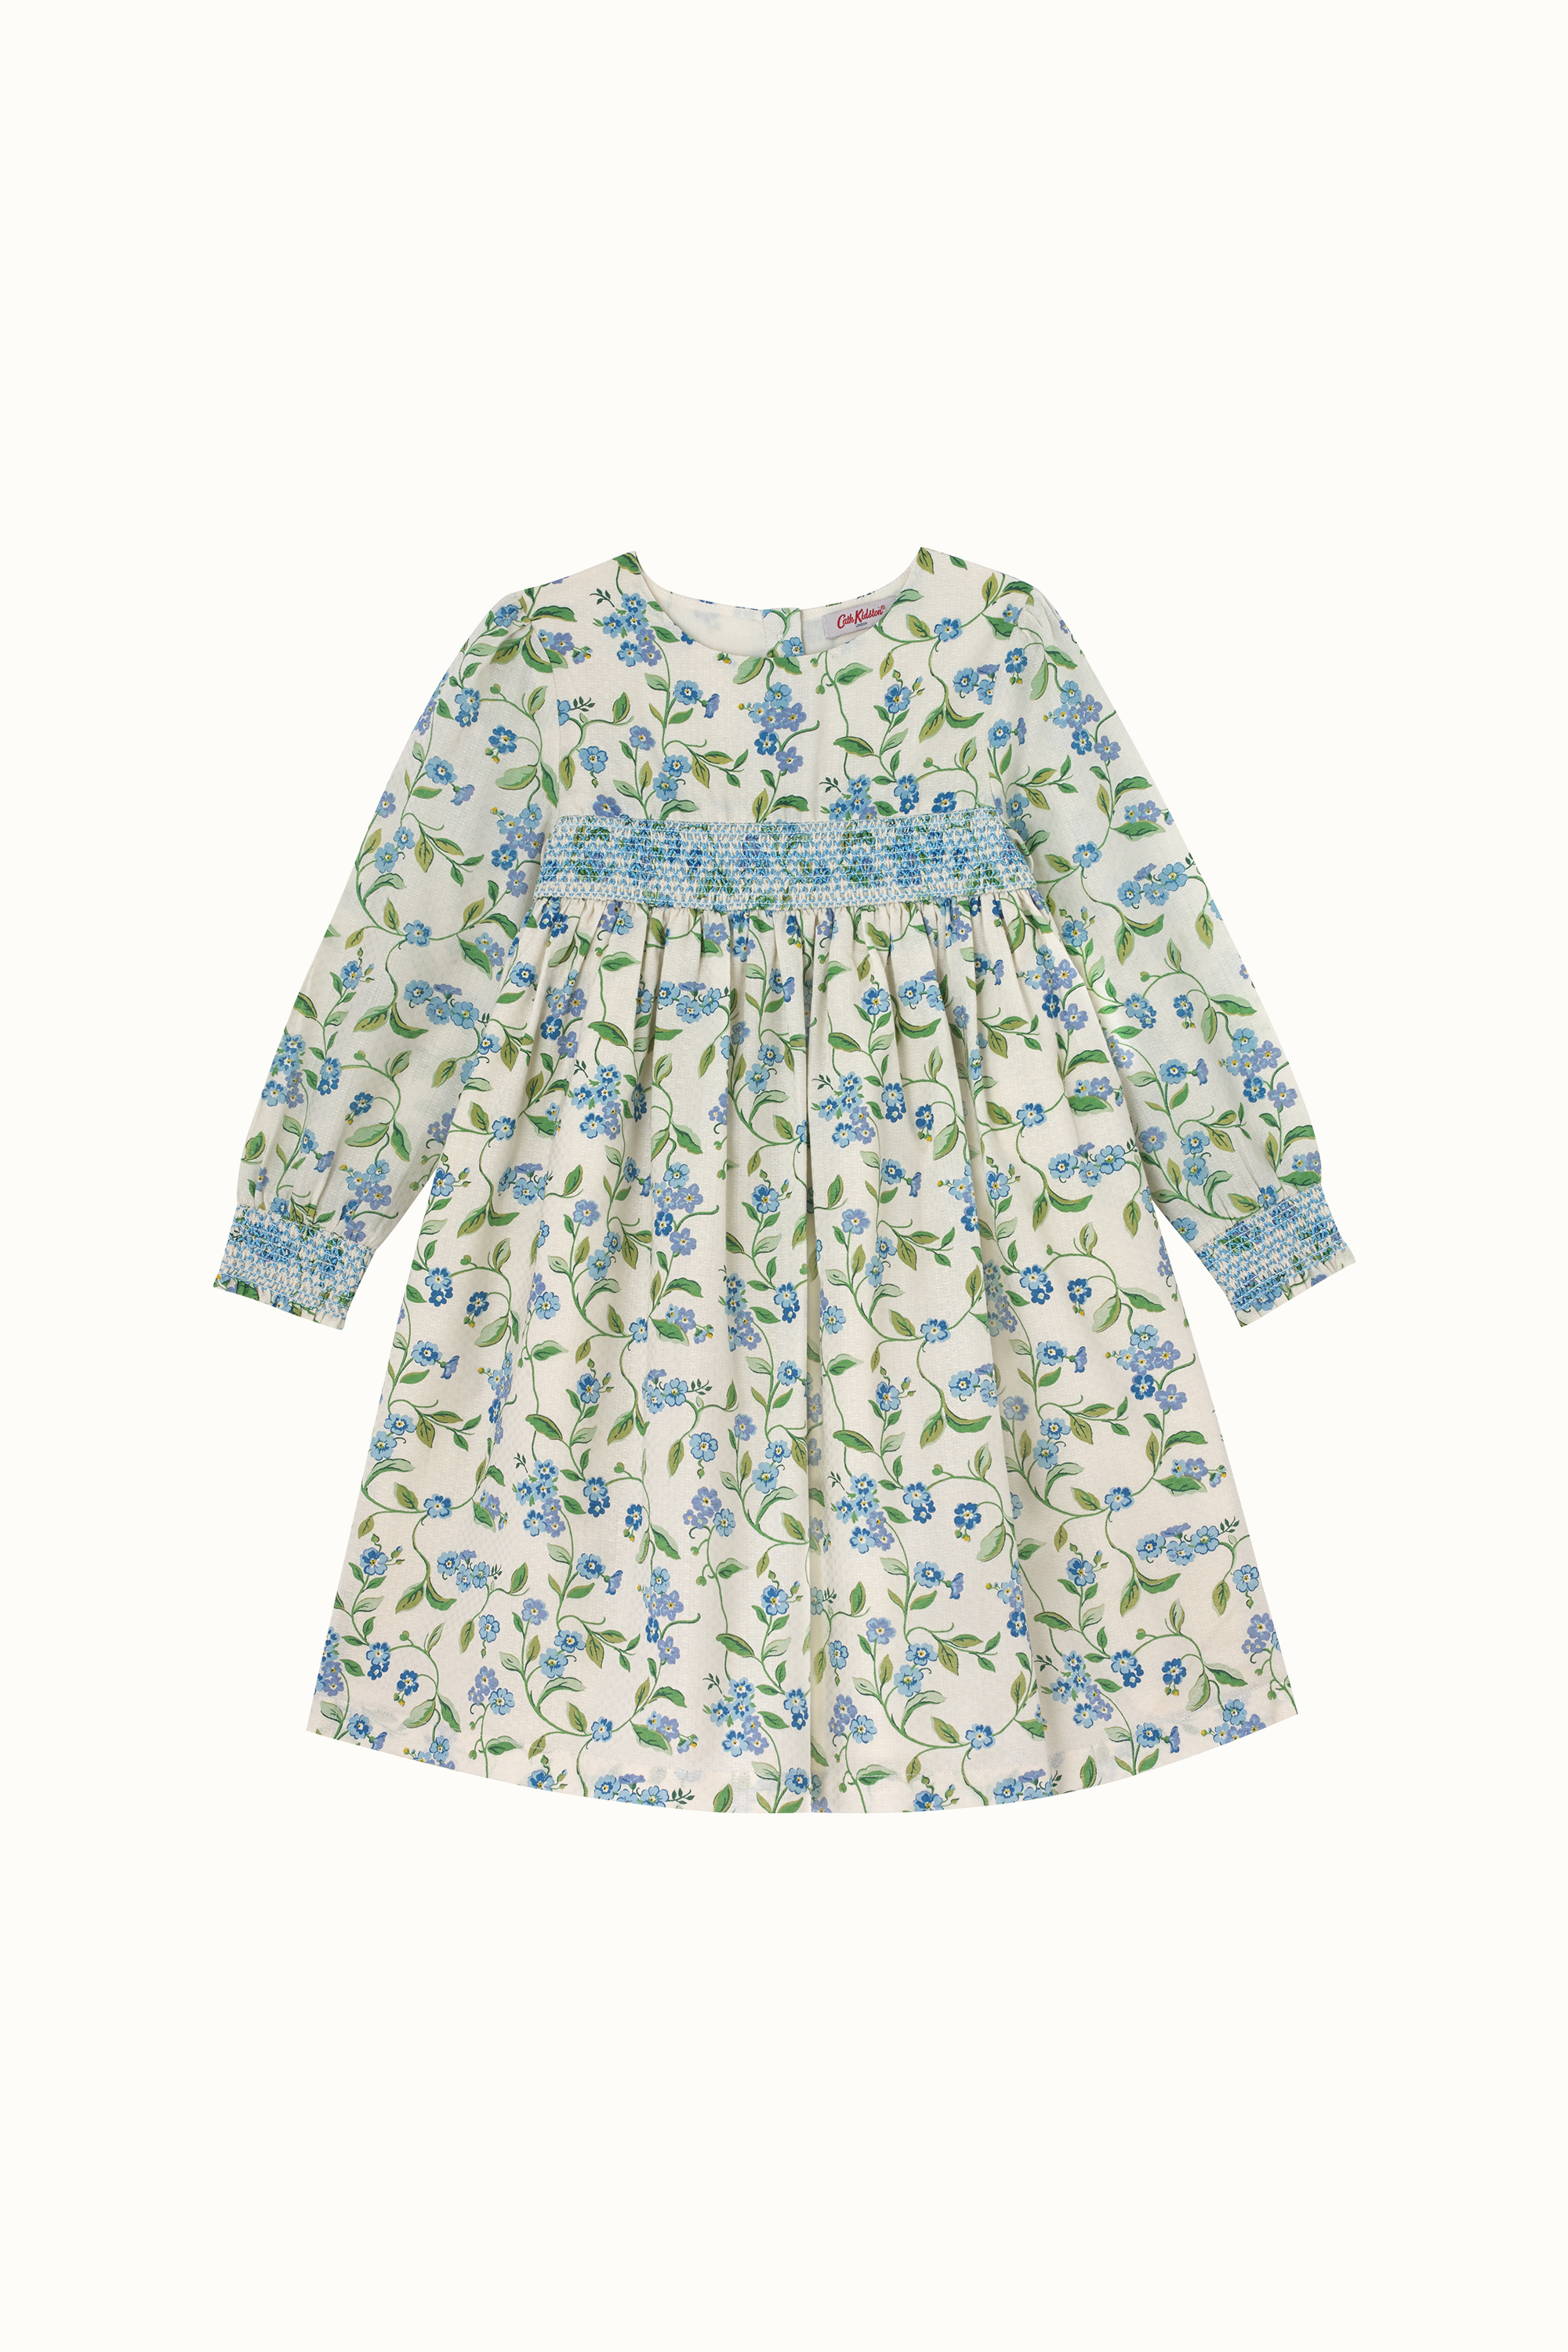 Cath Kidston Forget Me Not Evie Shirred Dress in Cream, 8-9 yr